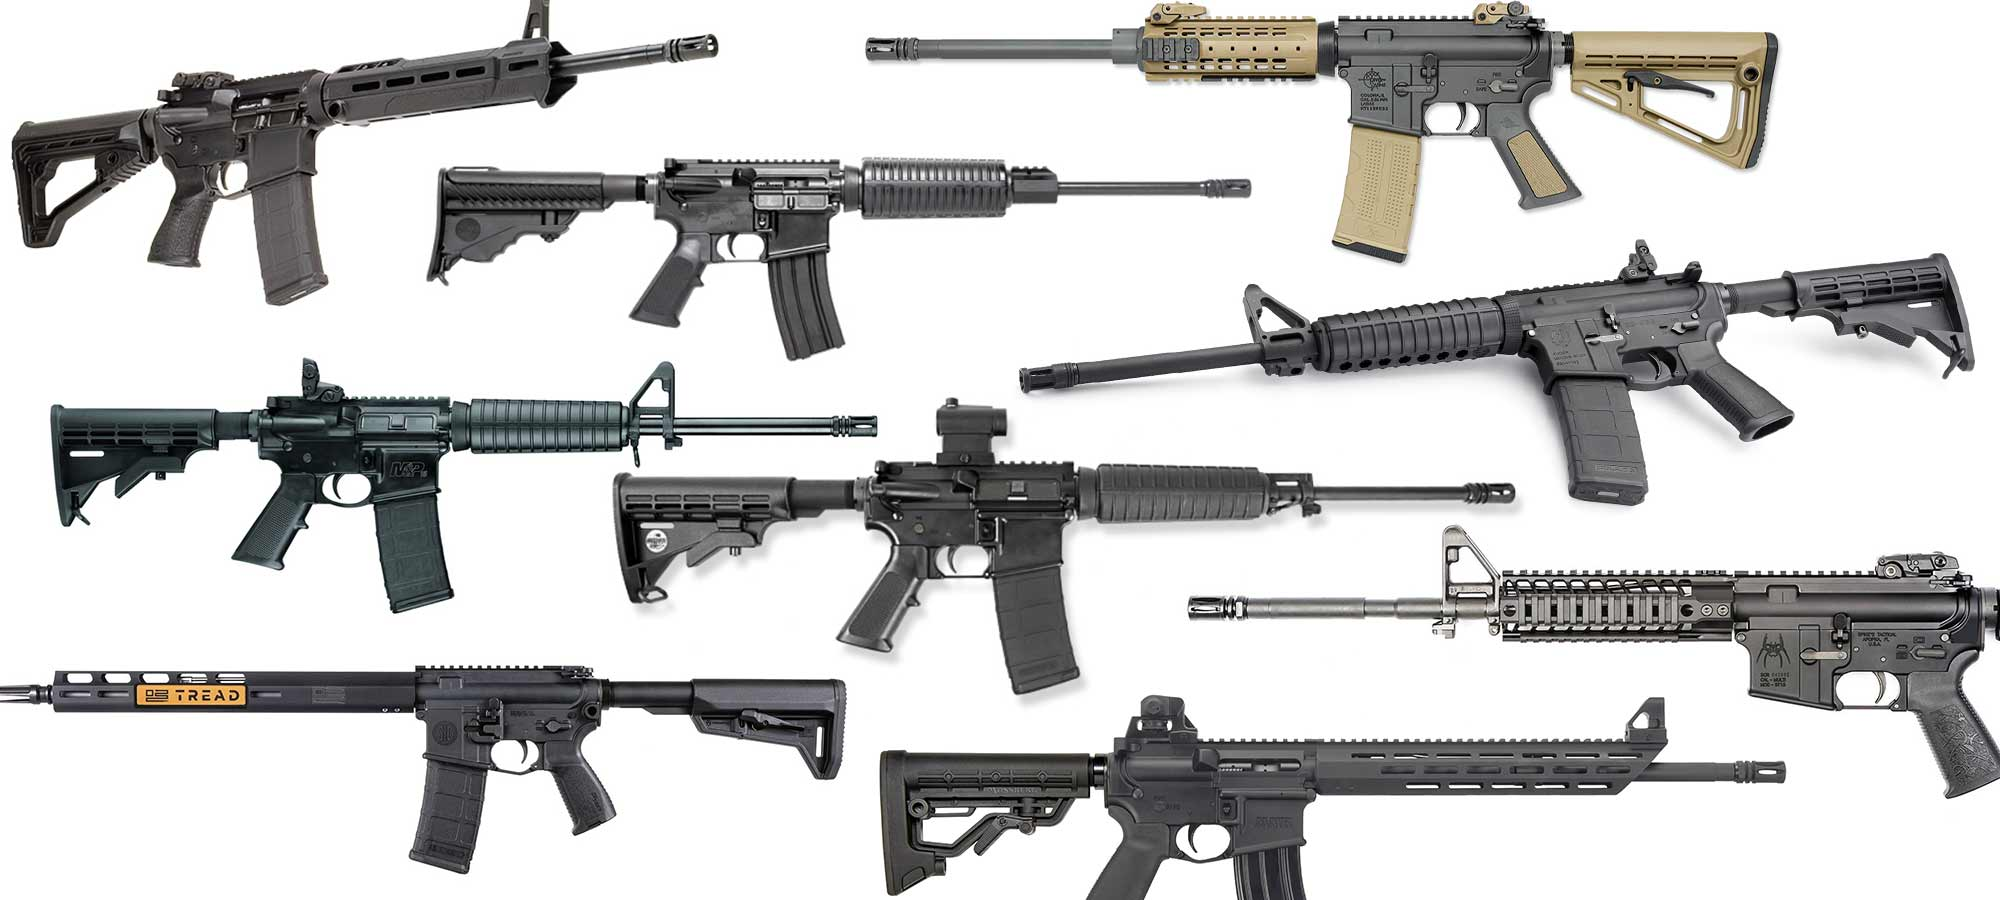 10 Great Home Defense ARs